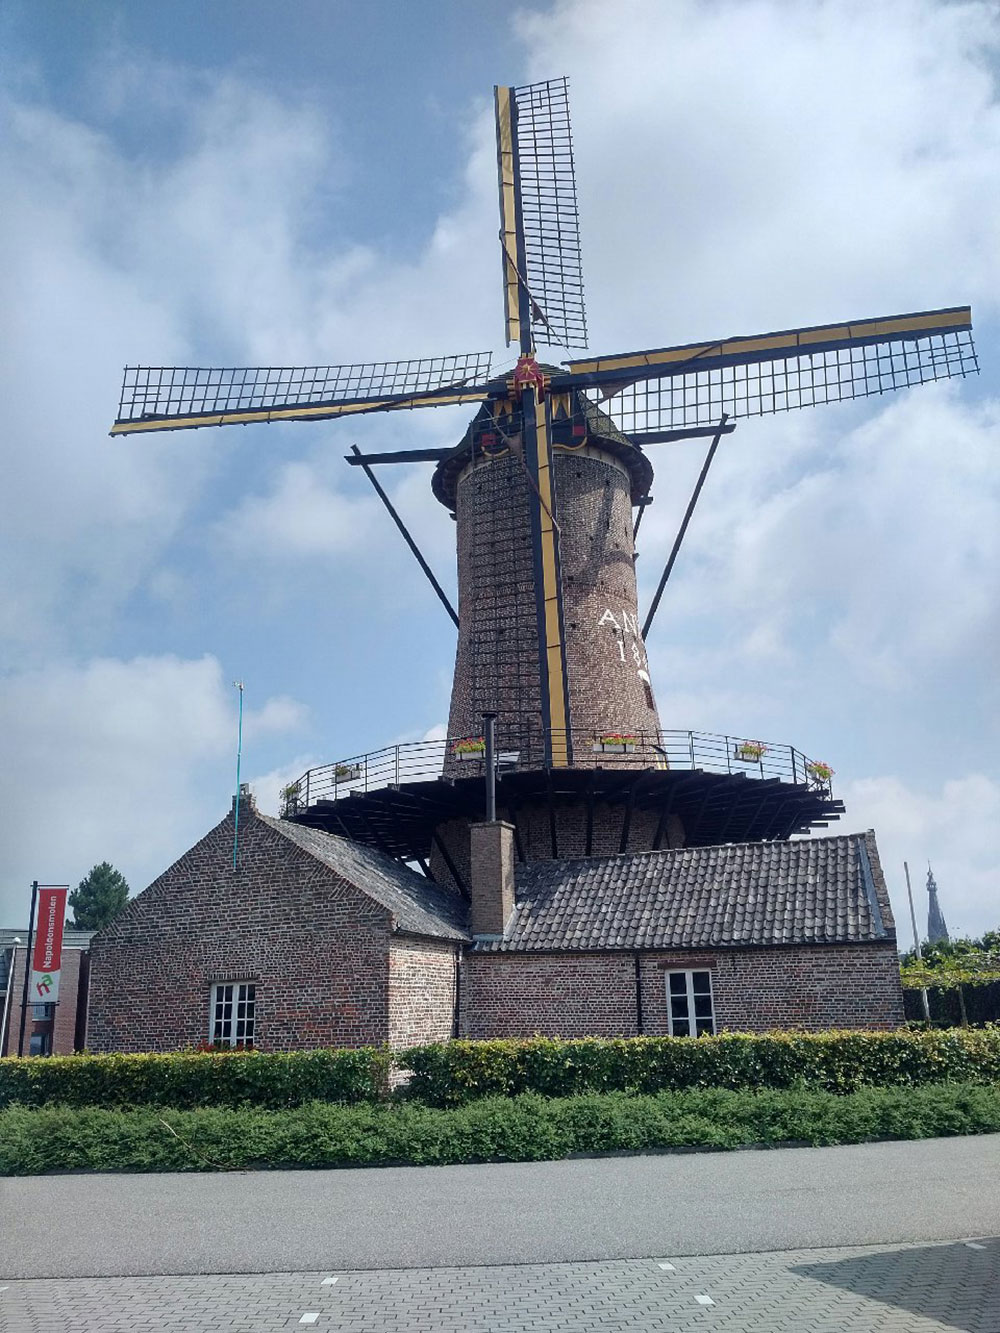 A rather superior windmill spotted on the drive through the Netherlands